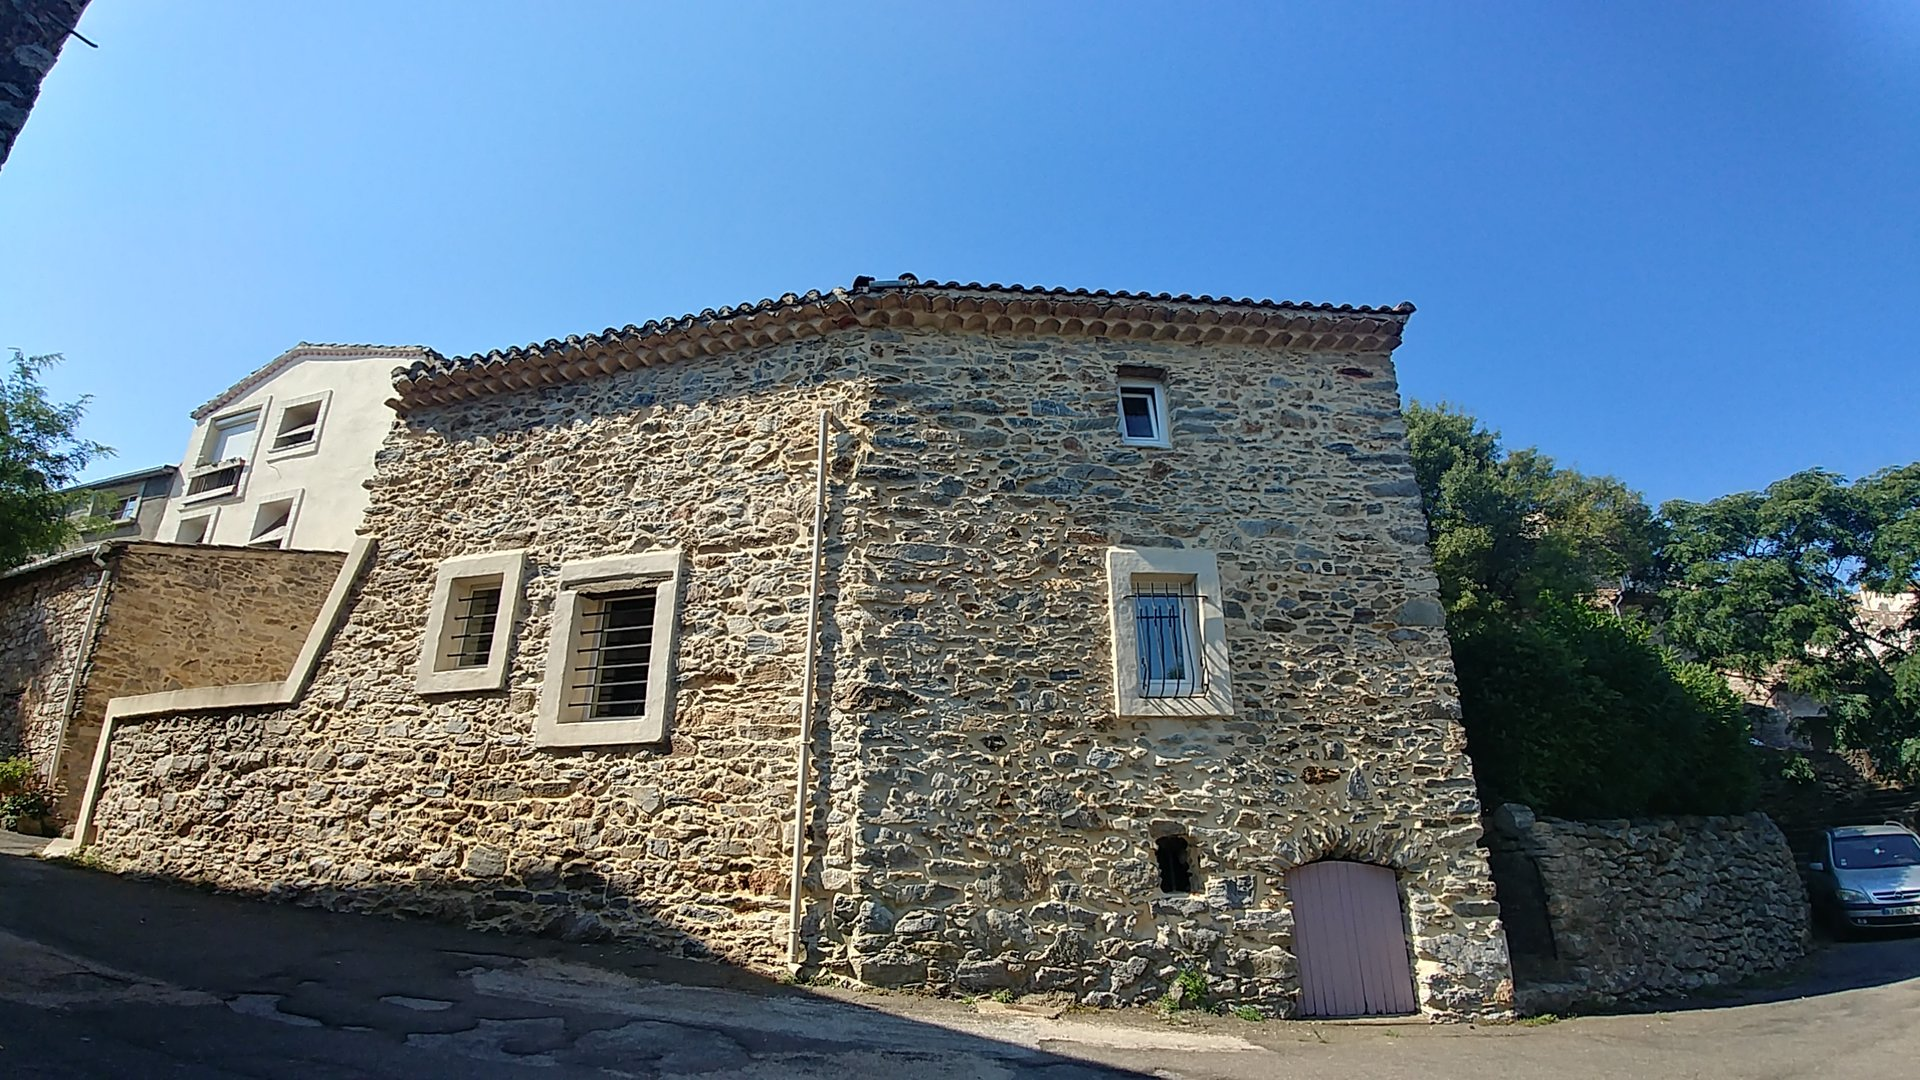 Supberbly renovated village house with views - garden, 2 terraces, garage, 3 bed 3 bath